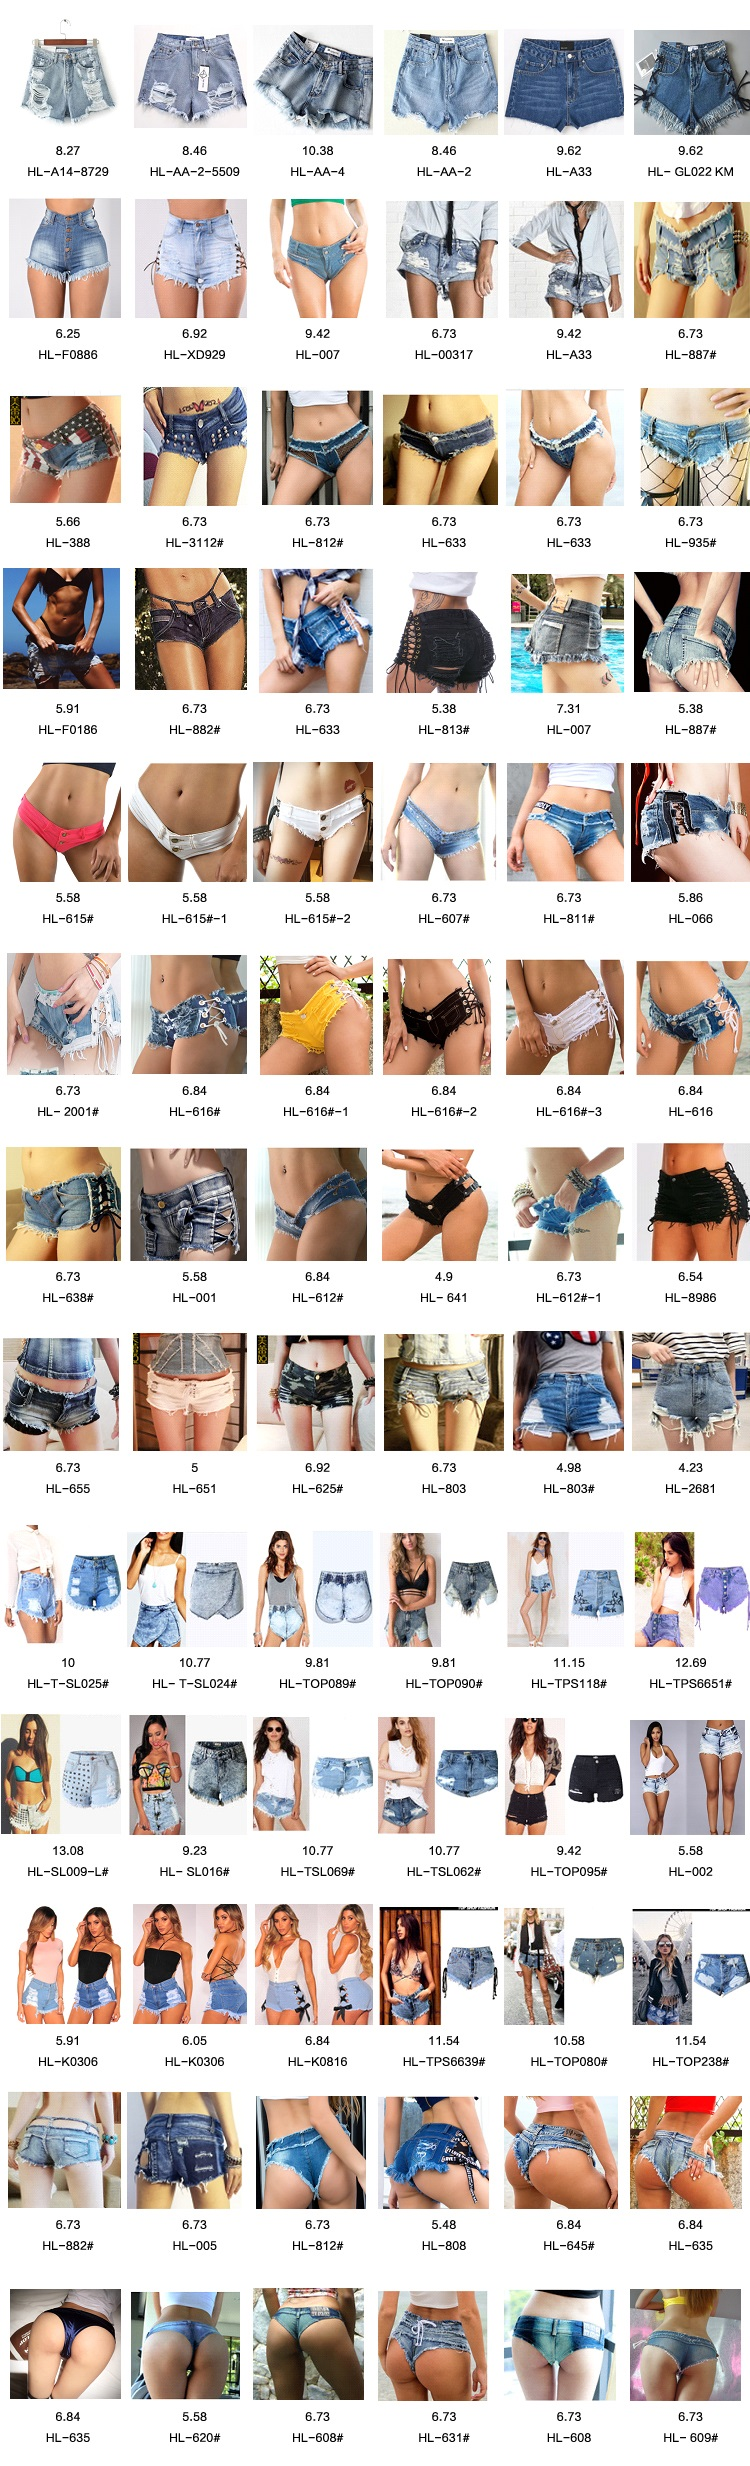 93179c378d Women High waisted blue denim shorts irregular hem broken holes fashion  Distressed Jeans oem. For Women's Jeans ,pls check our store